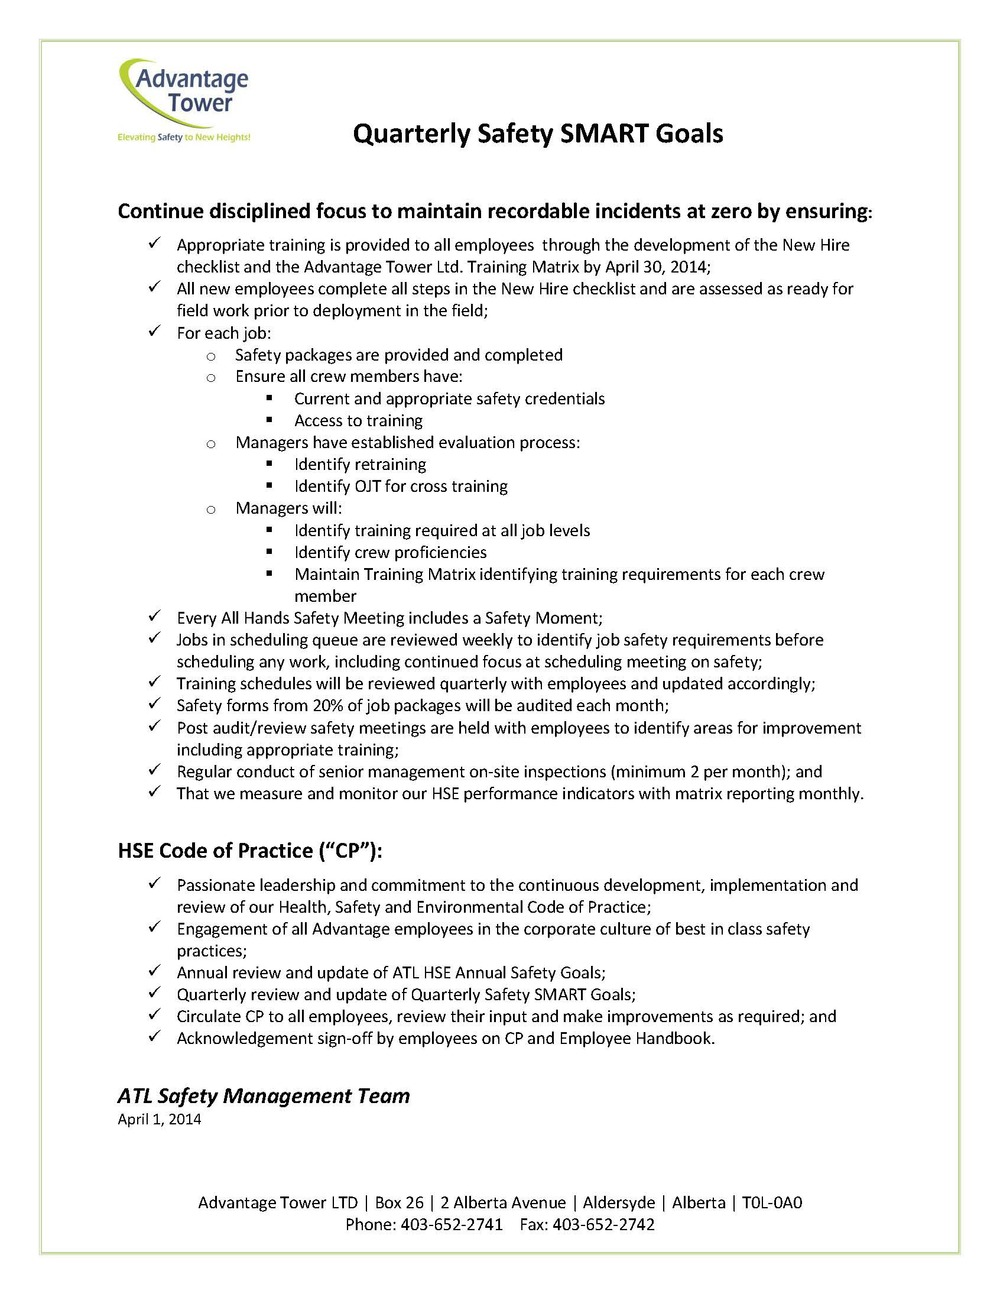 ATL Quarterly Safety SMART Goals April 1 2014.jpg